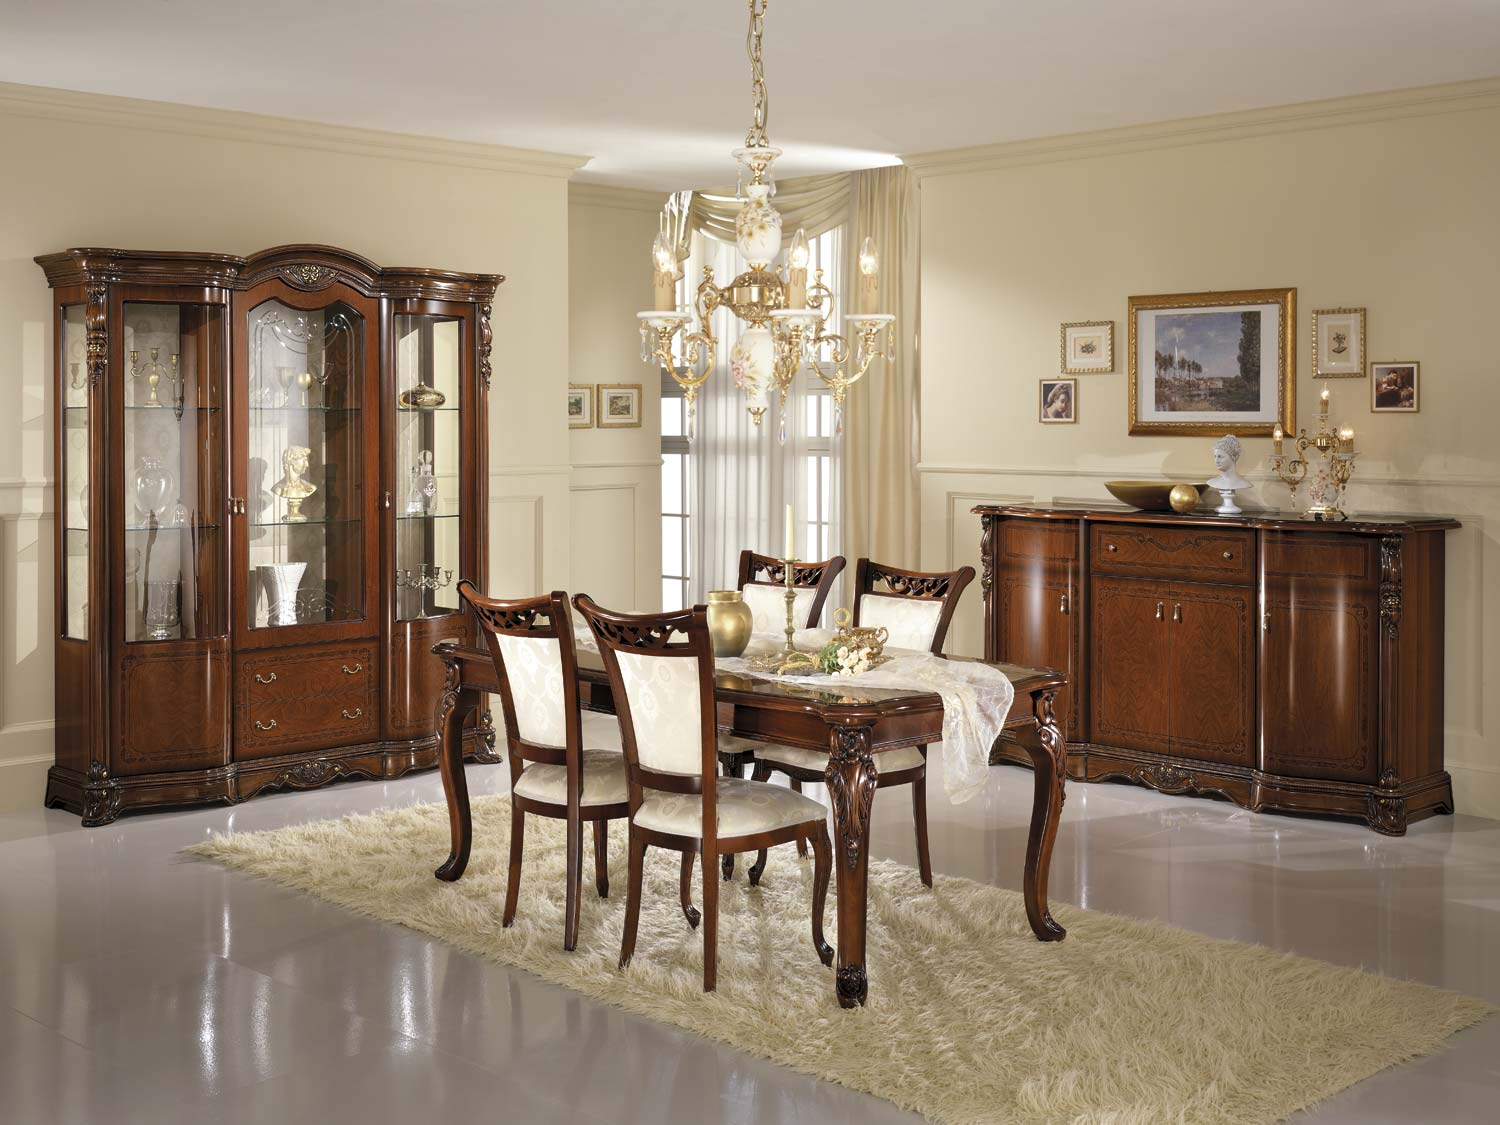 4-seater-dining-table